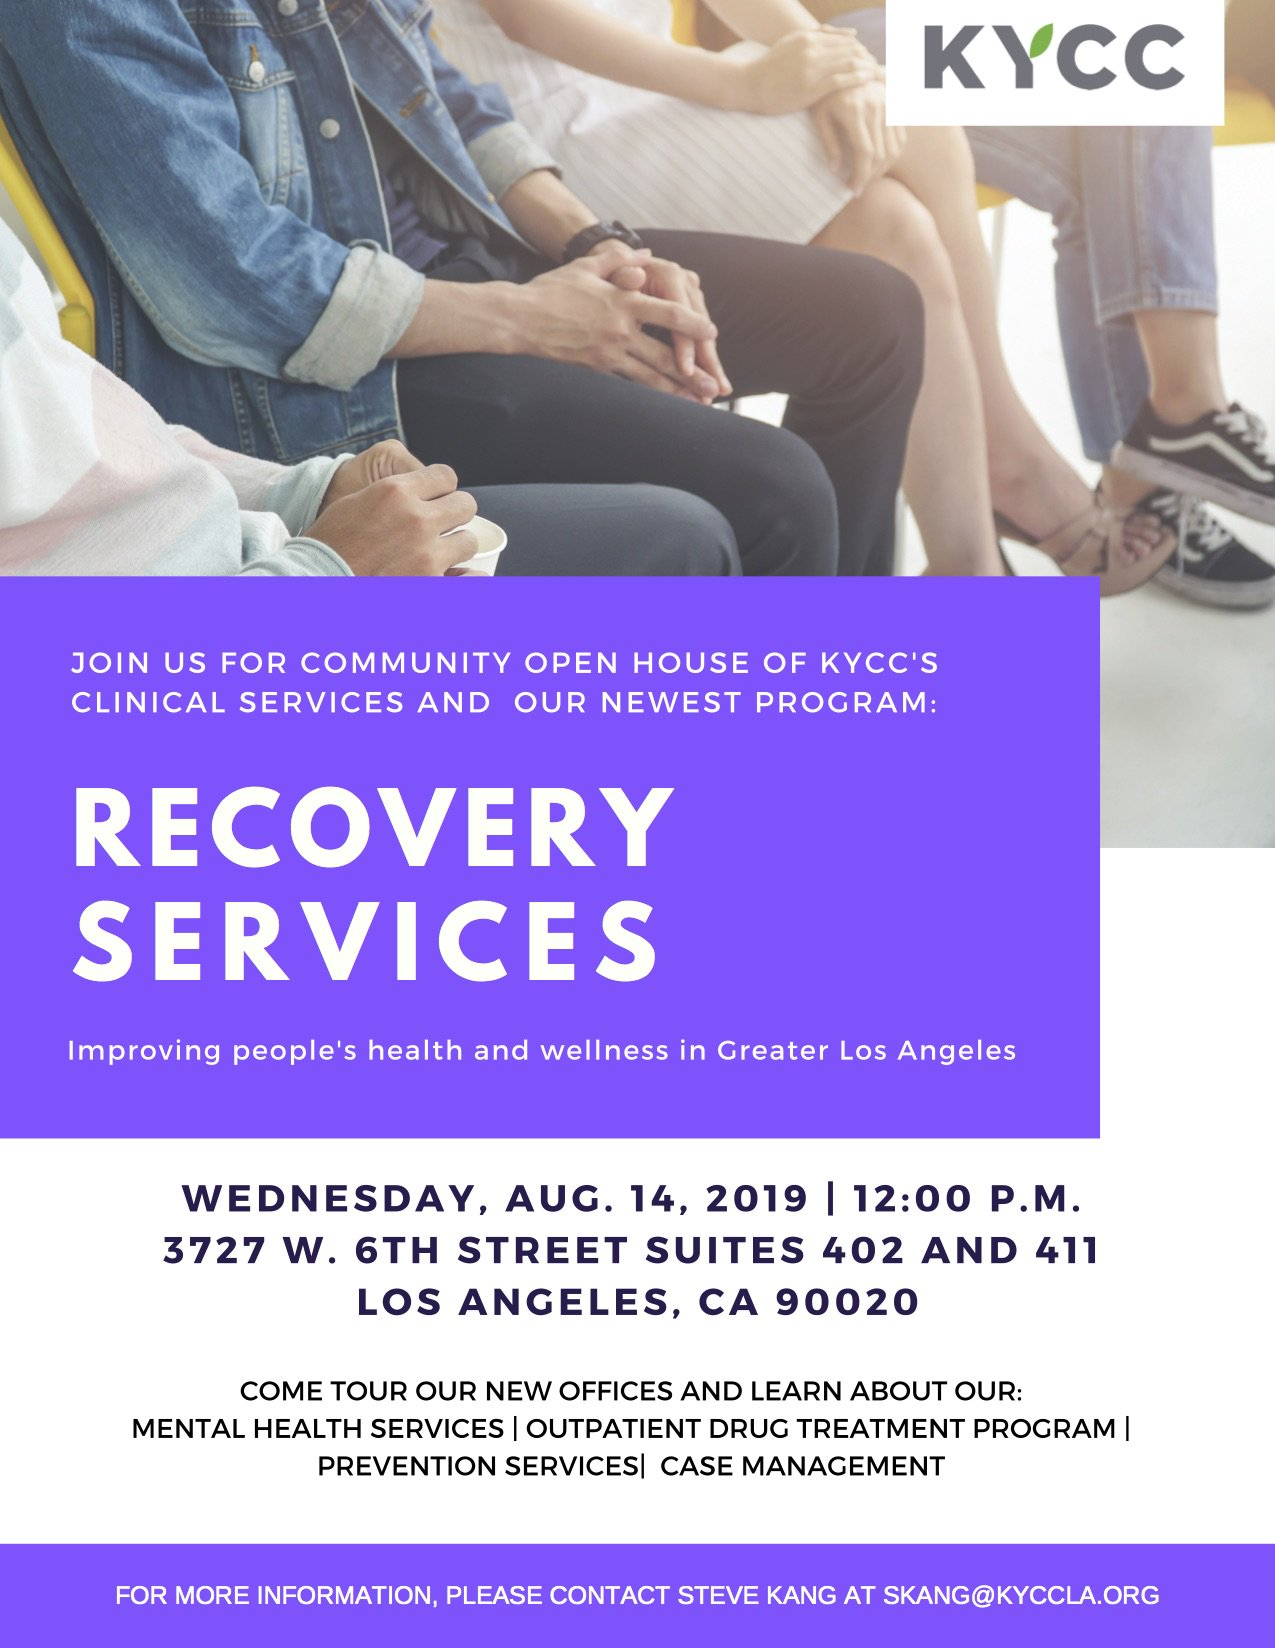 KYCC Recovery Services